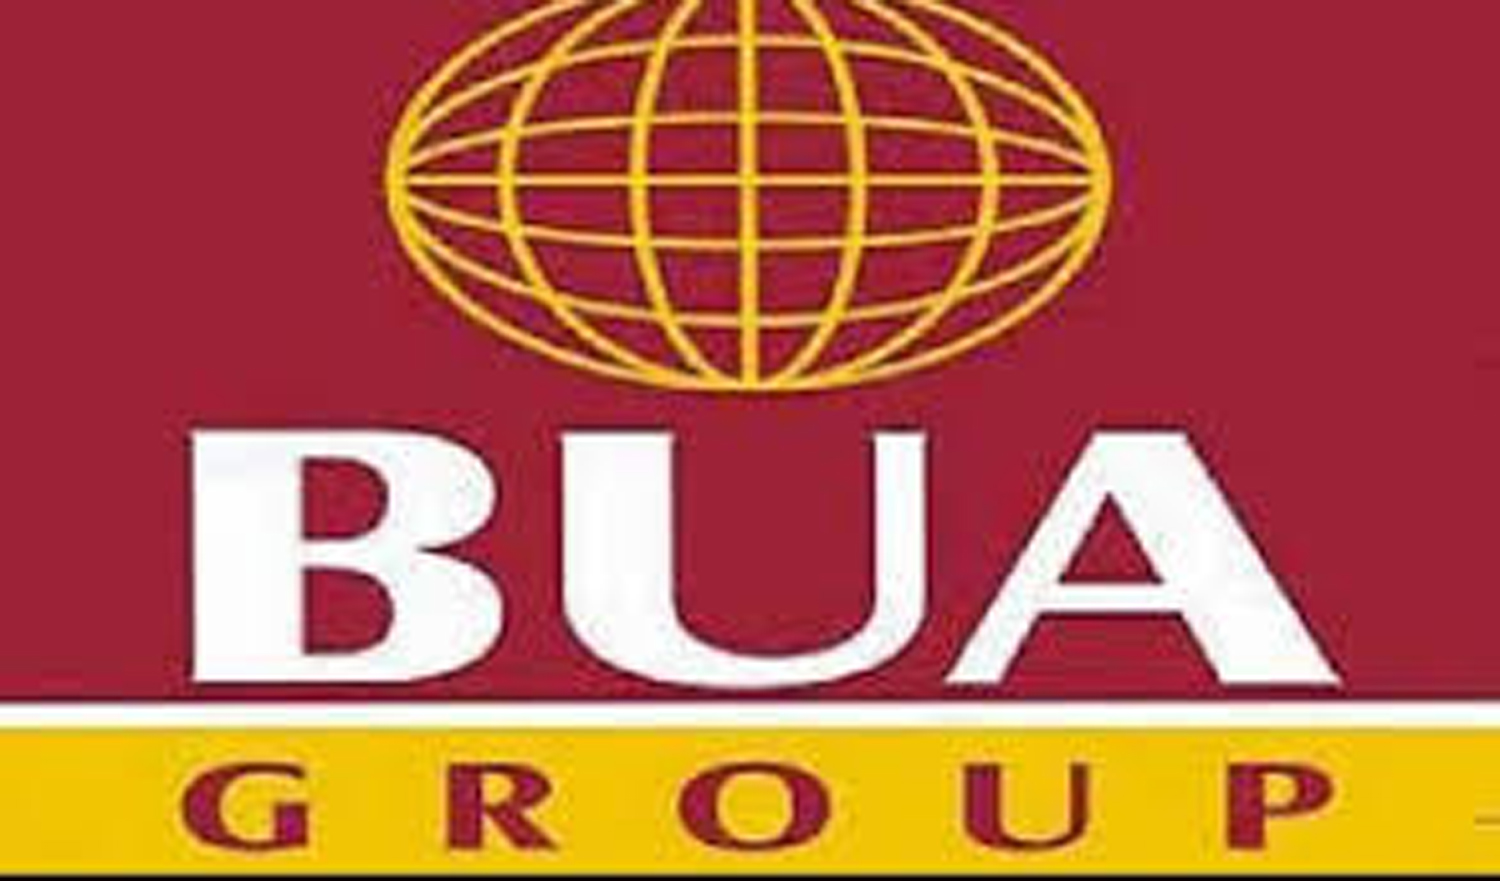 N115bn Issue: BUA completes largest corporate bond